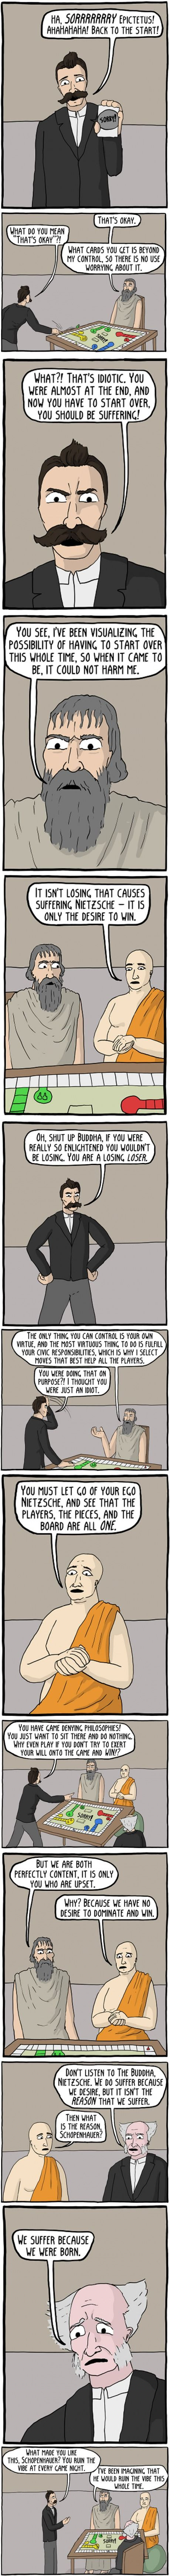 Philosophical gaming (By Existential Comics)